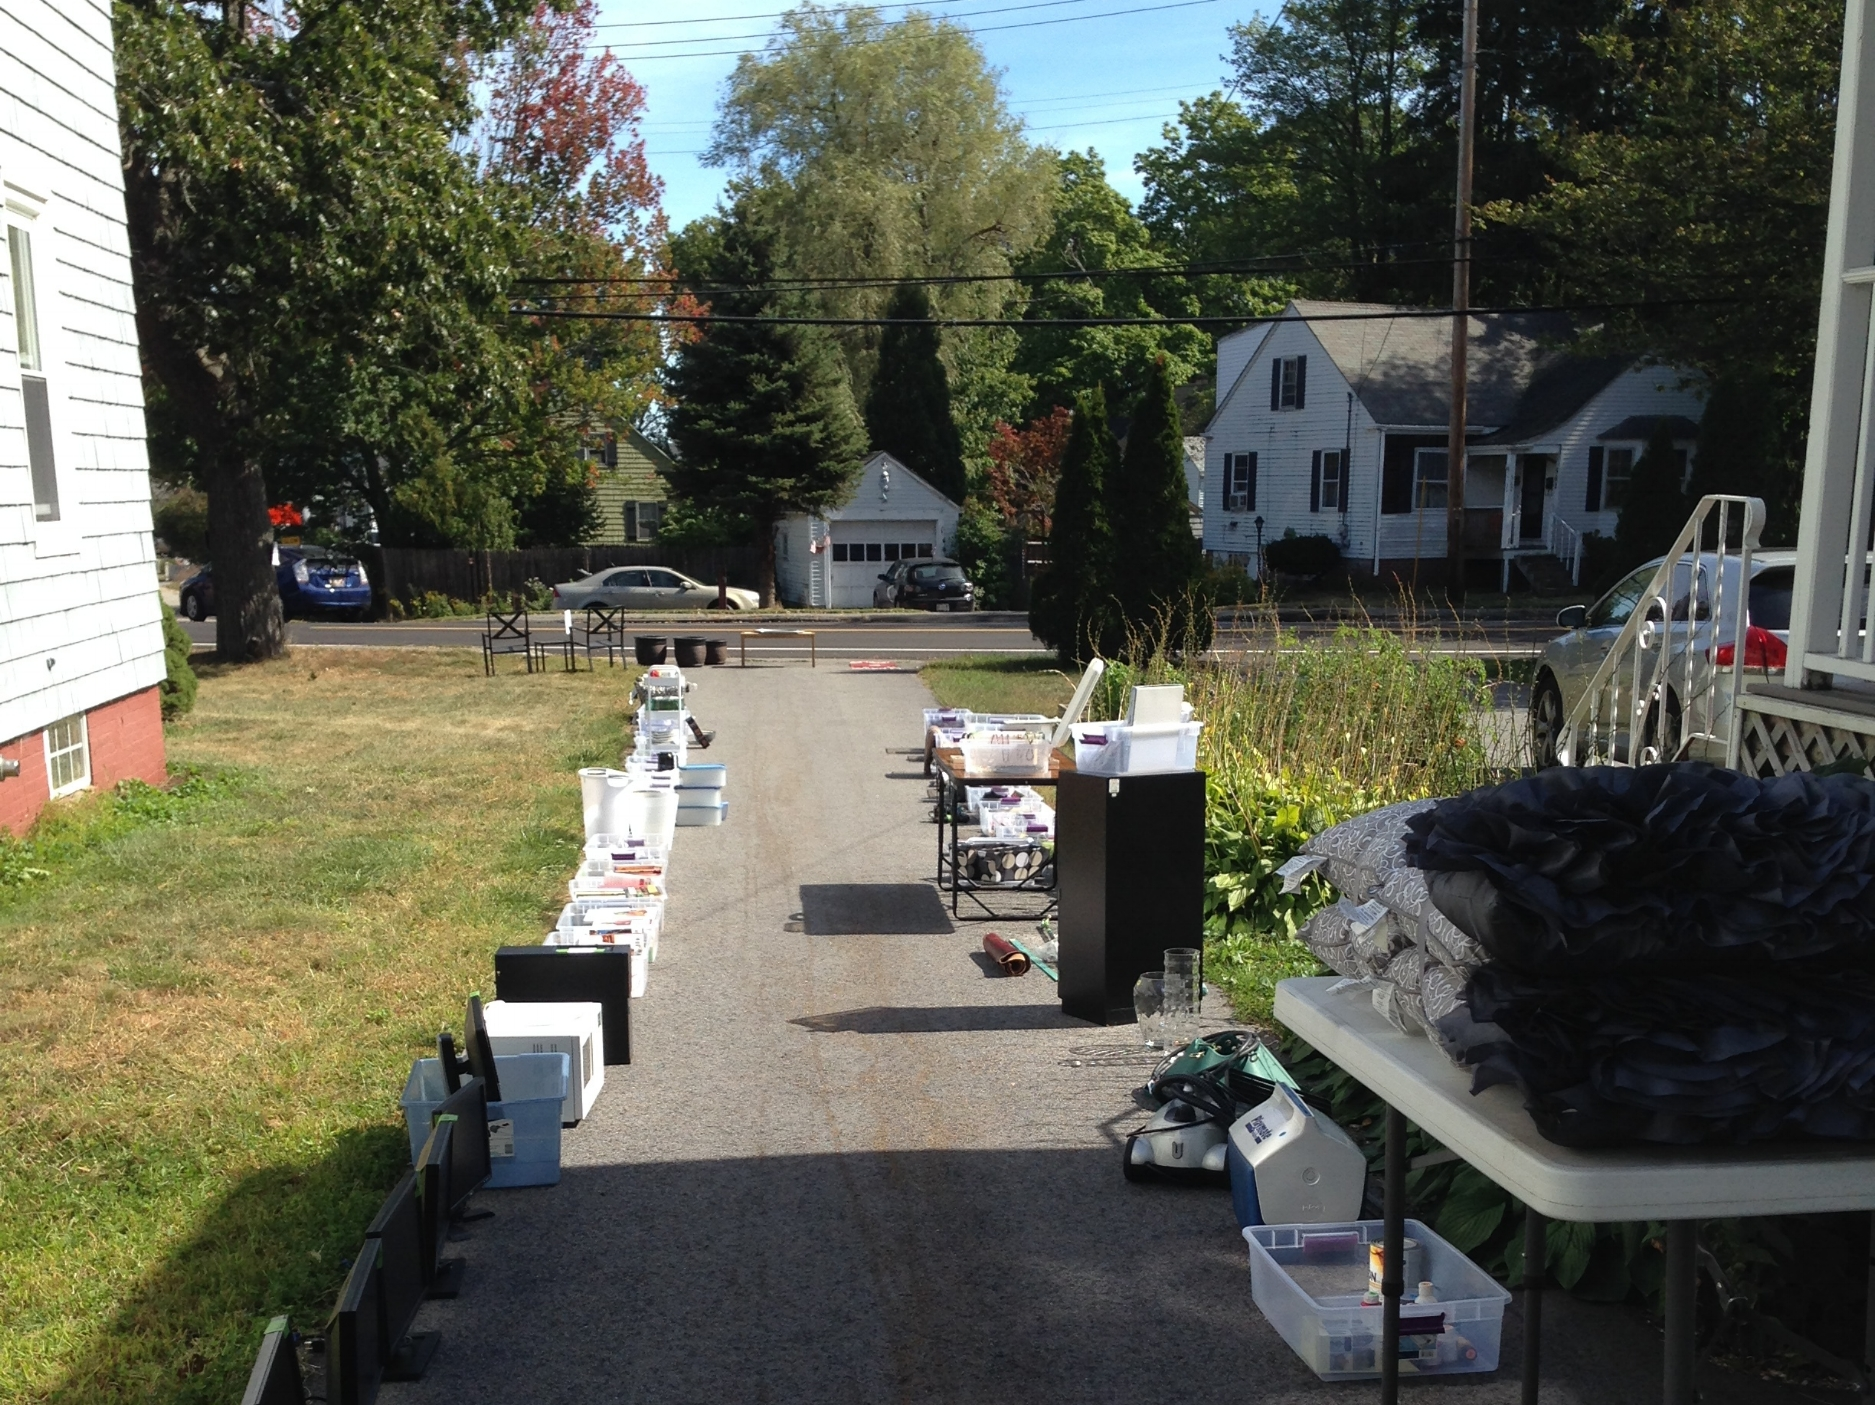 I stopped by to say hello on yard sale day! Next my client packs to move.